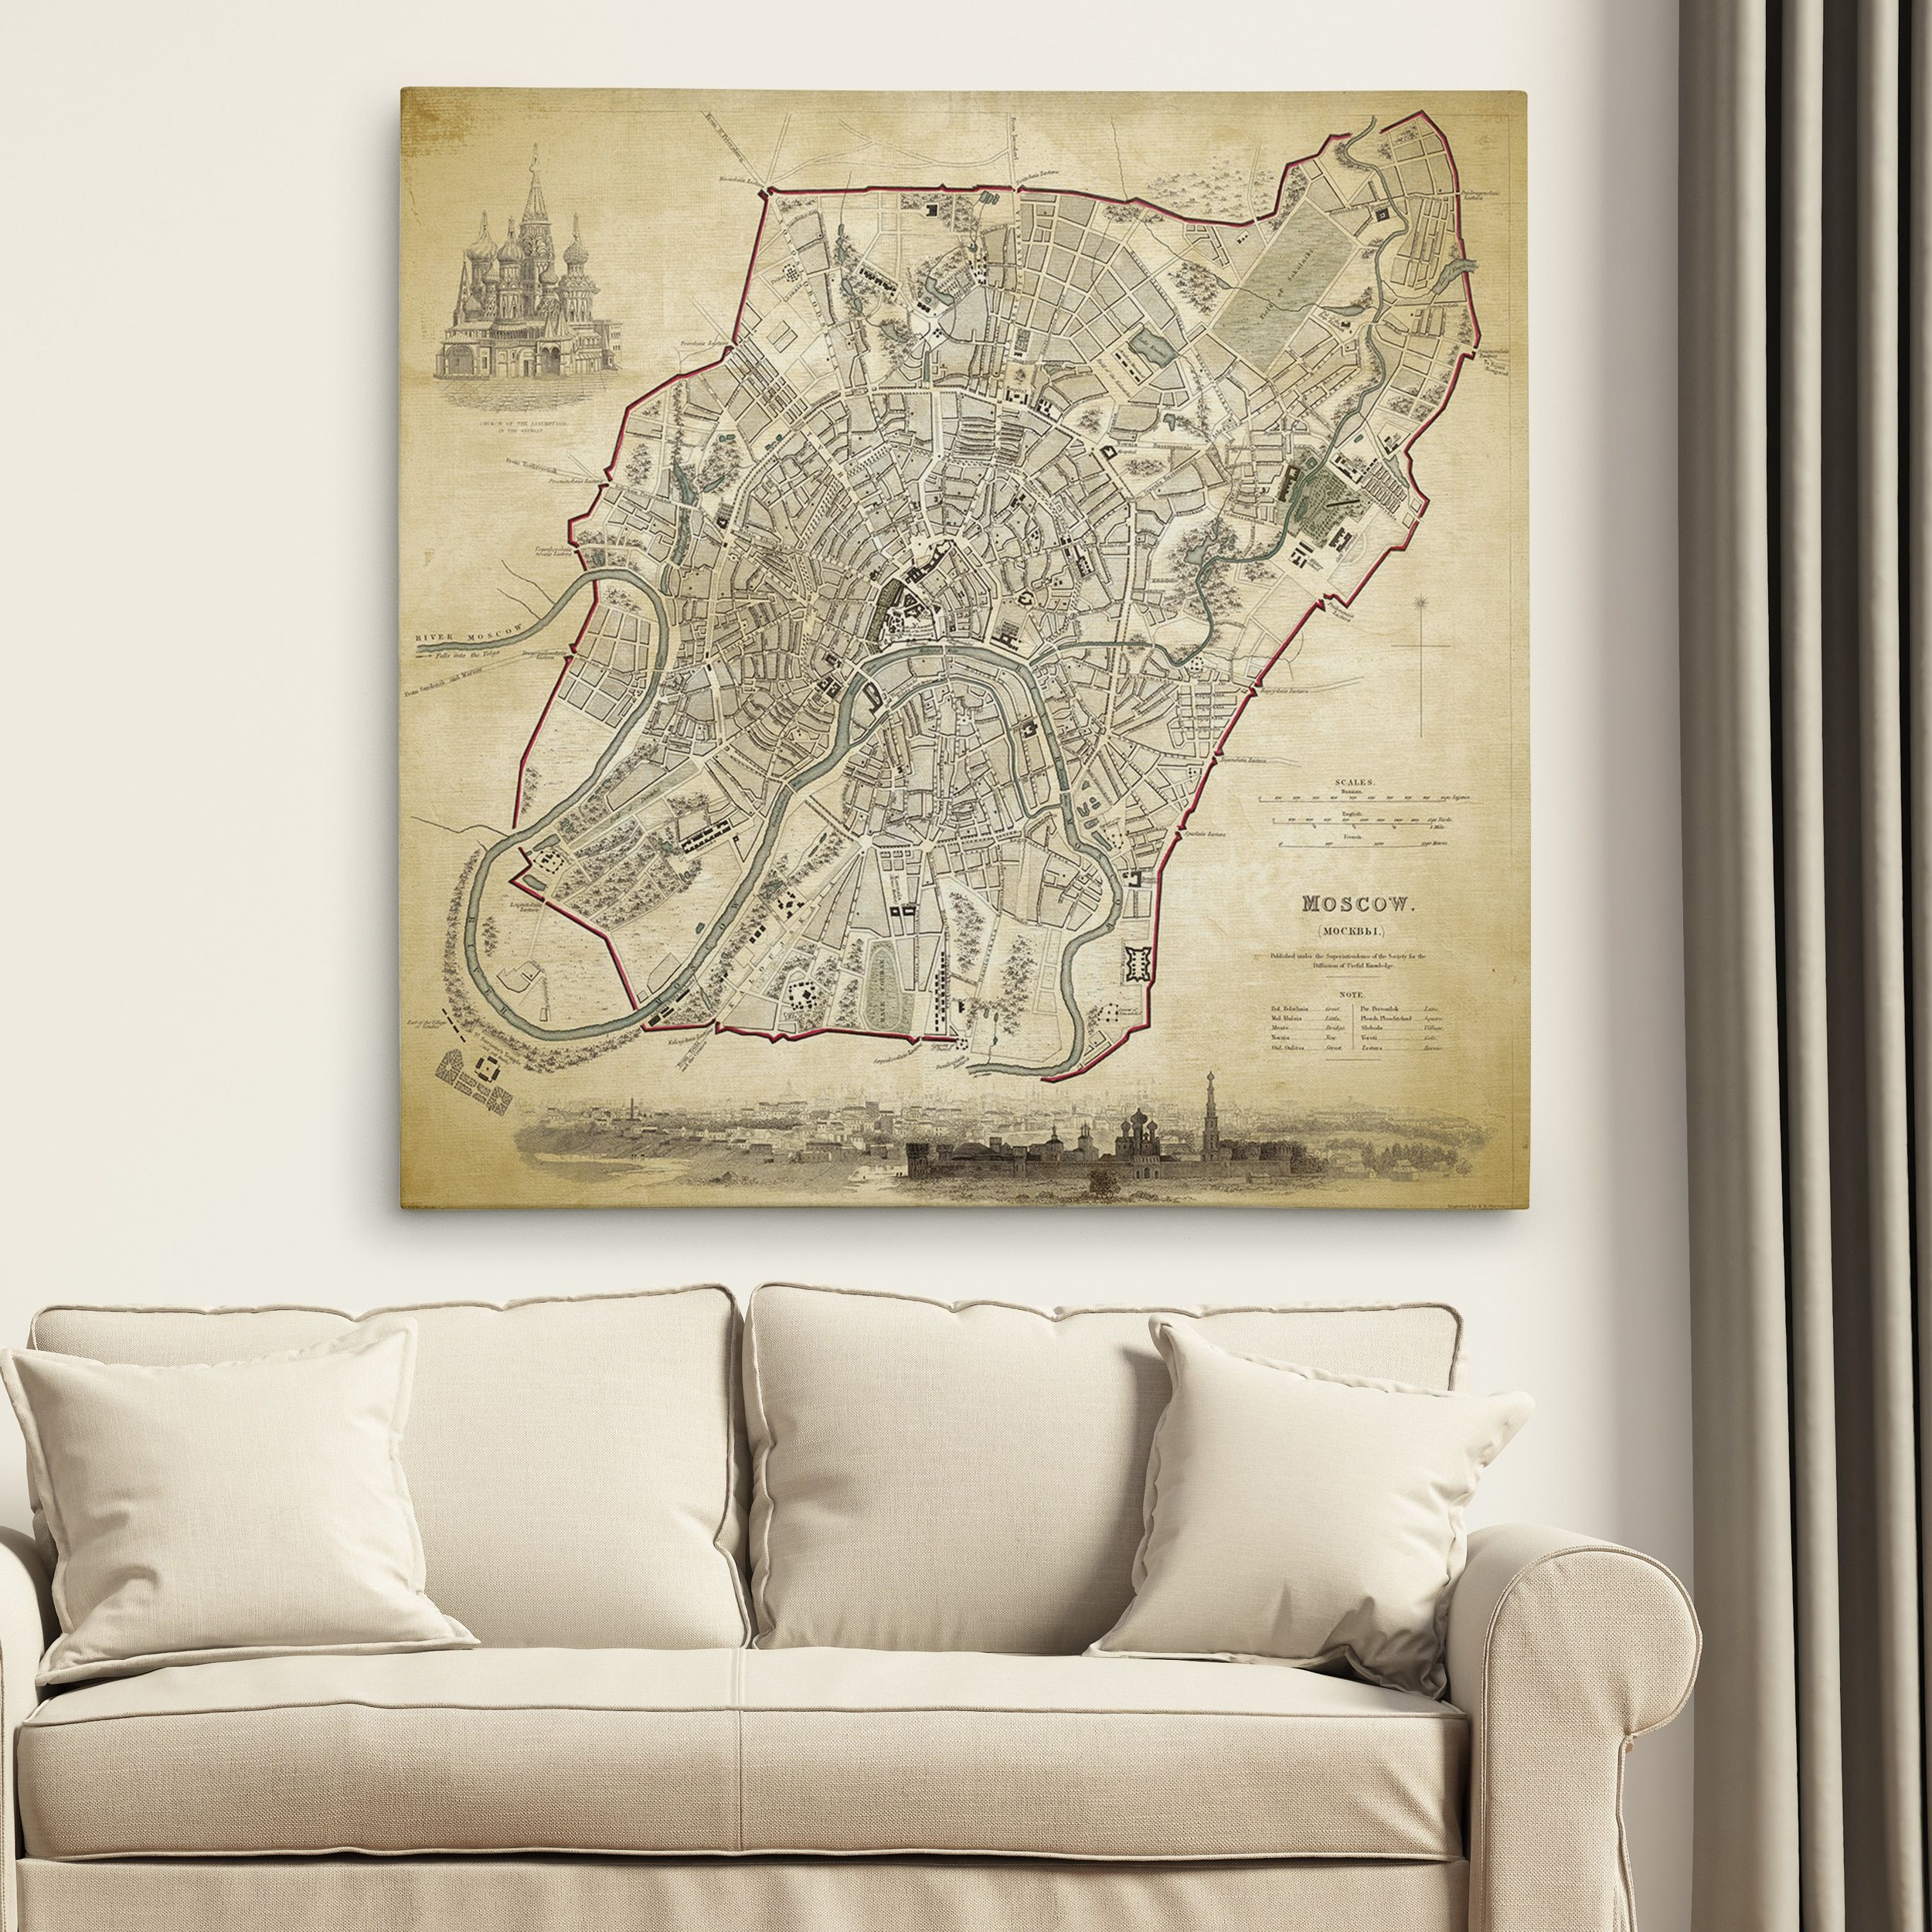 Wexford home vintage world map i premium gallery wrapped canvas wexford home vintage world map i premium gallery wrapped canvas gumiabroncs Image collections